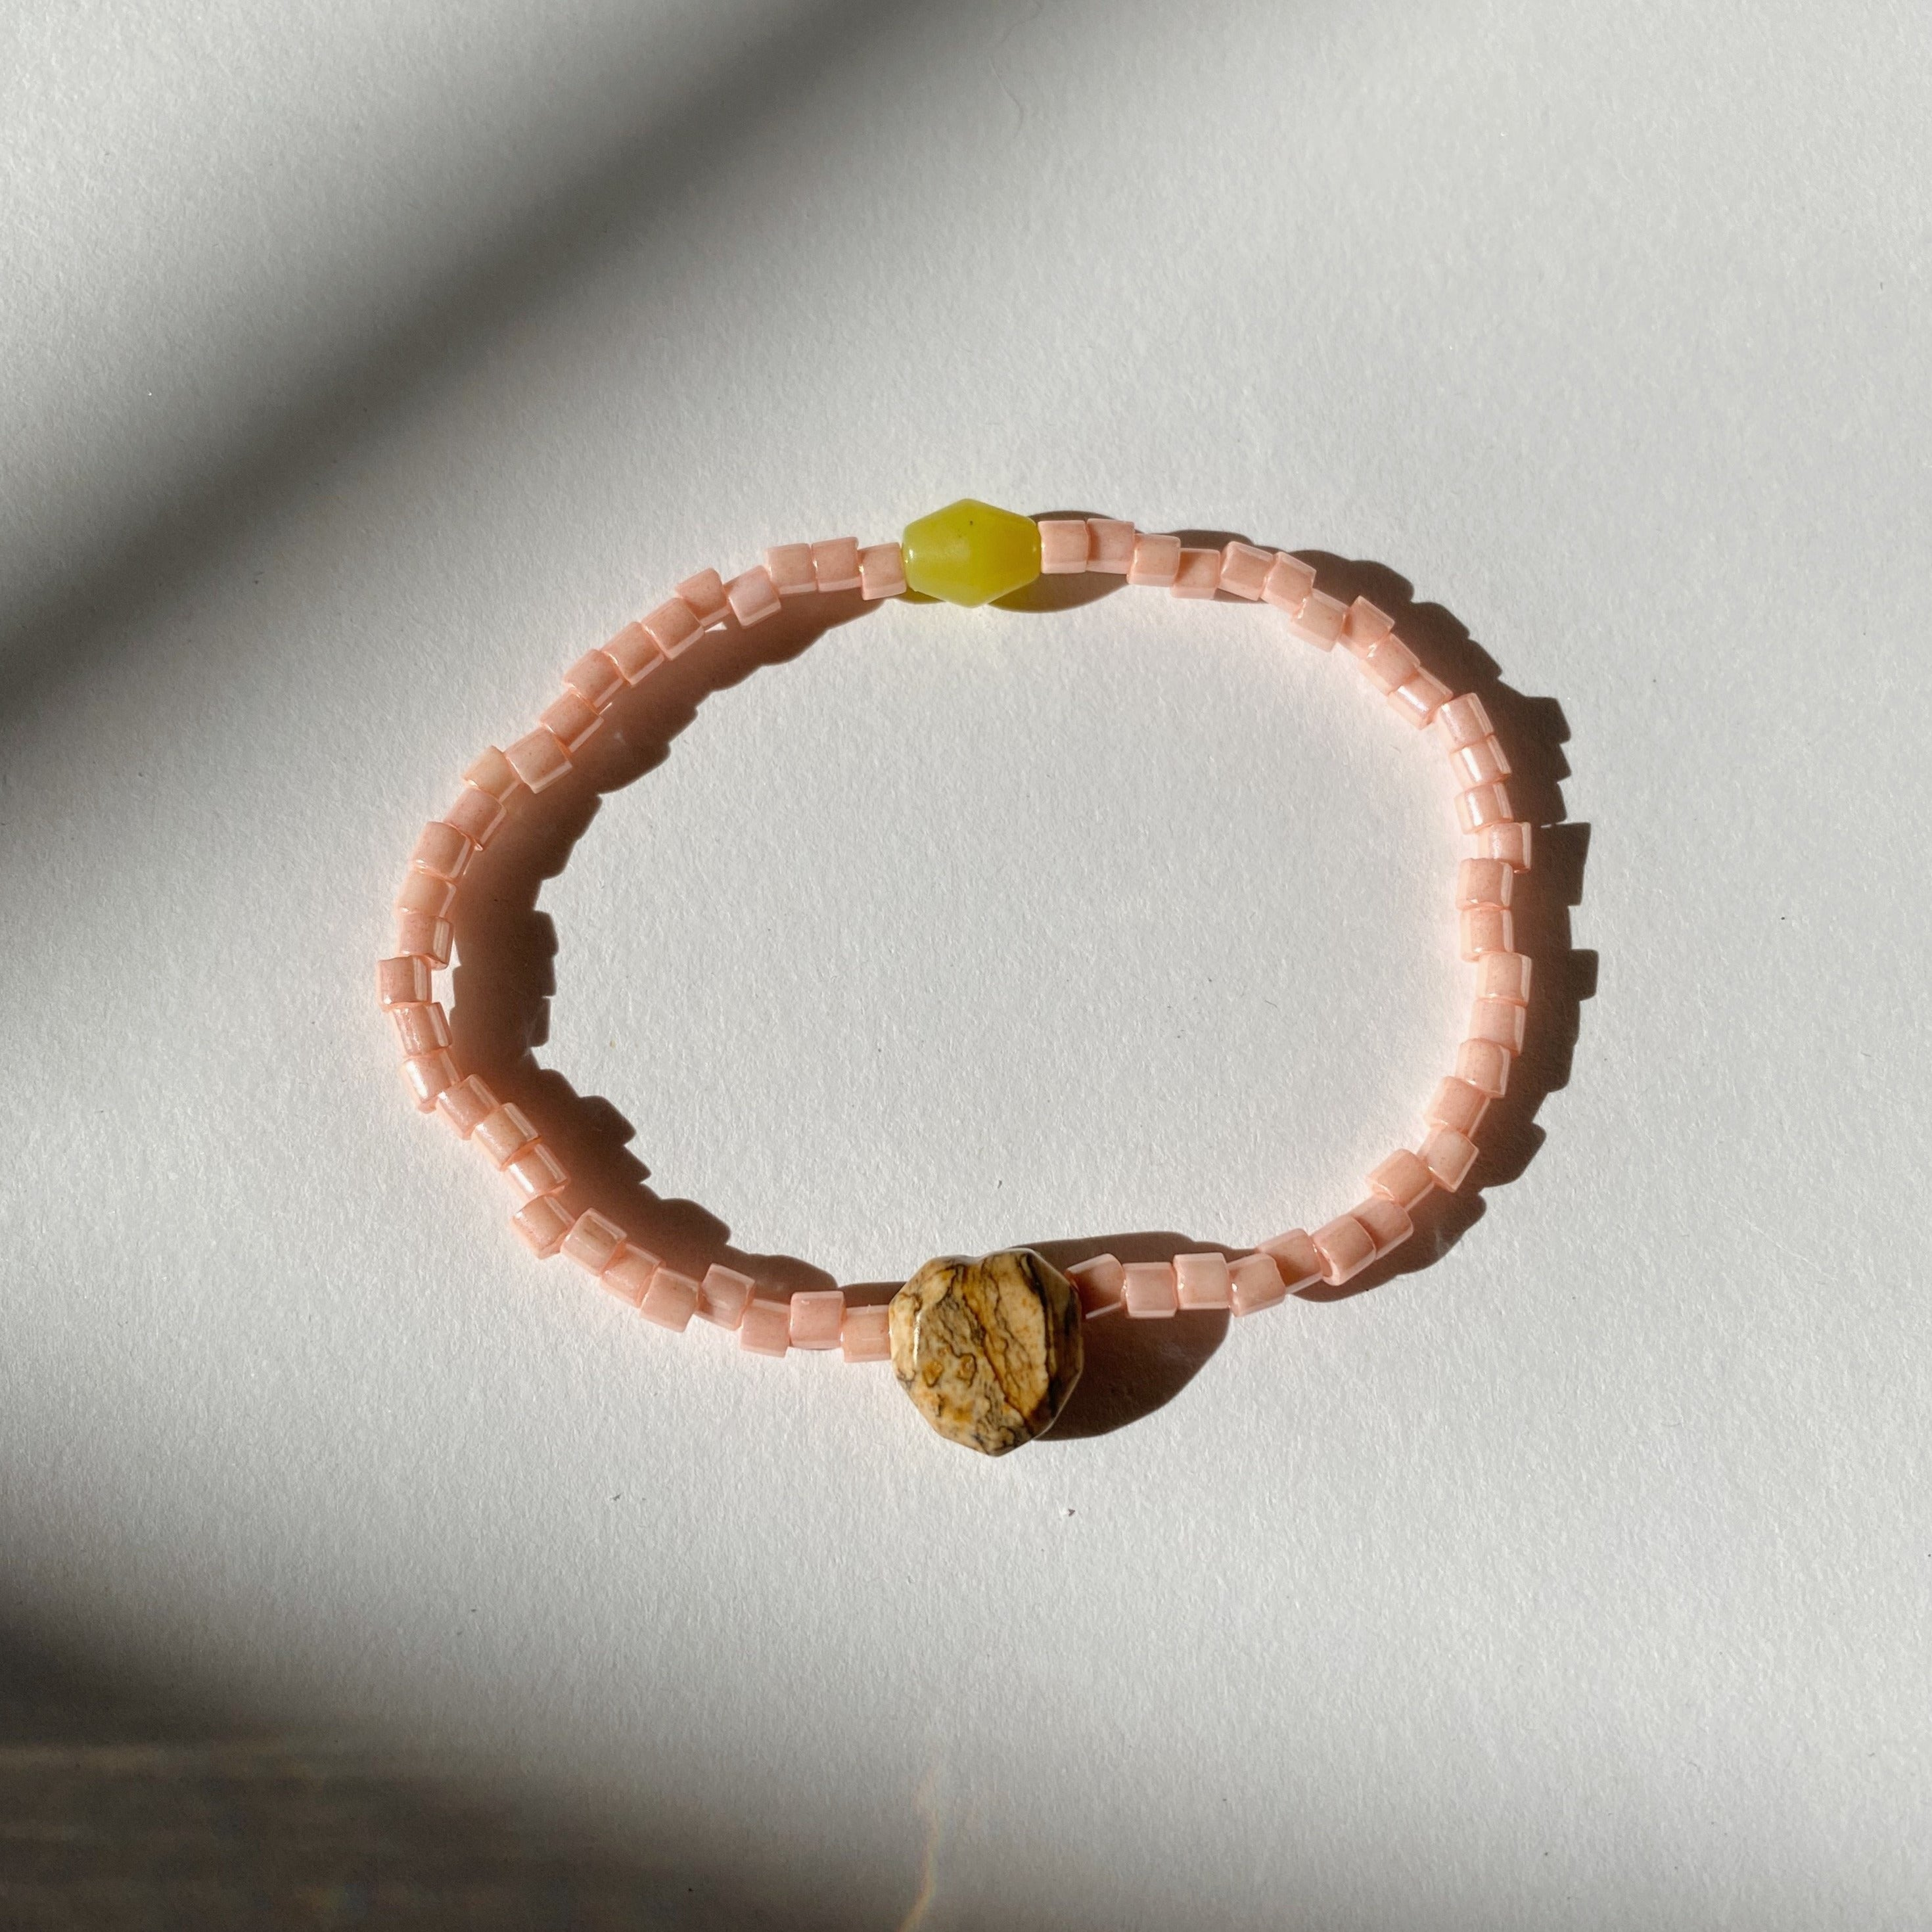 SWEETHEART BRACELET - STRAWBERRY YAN YAN